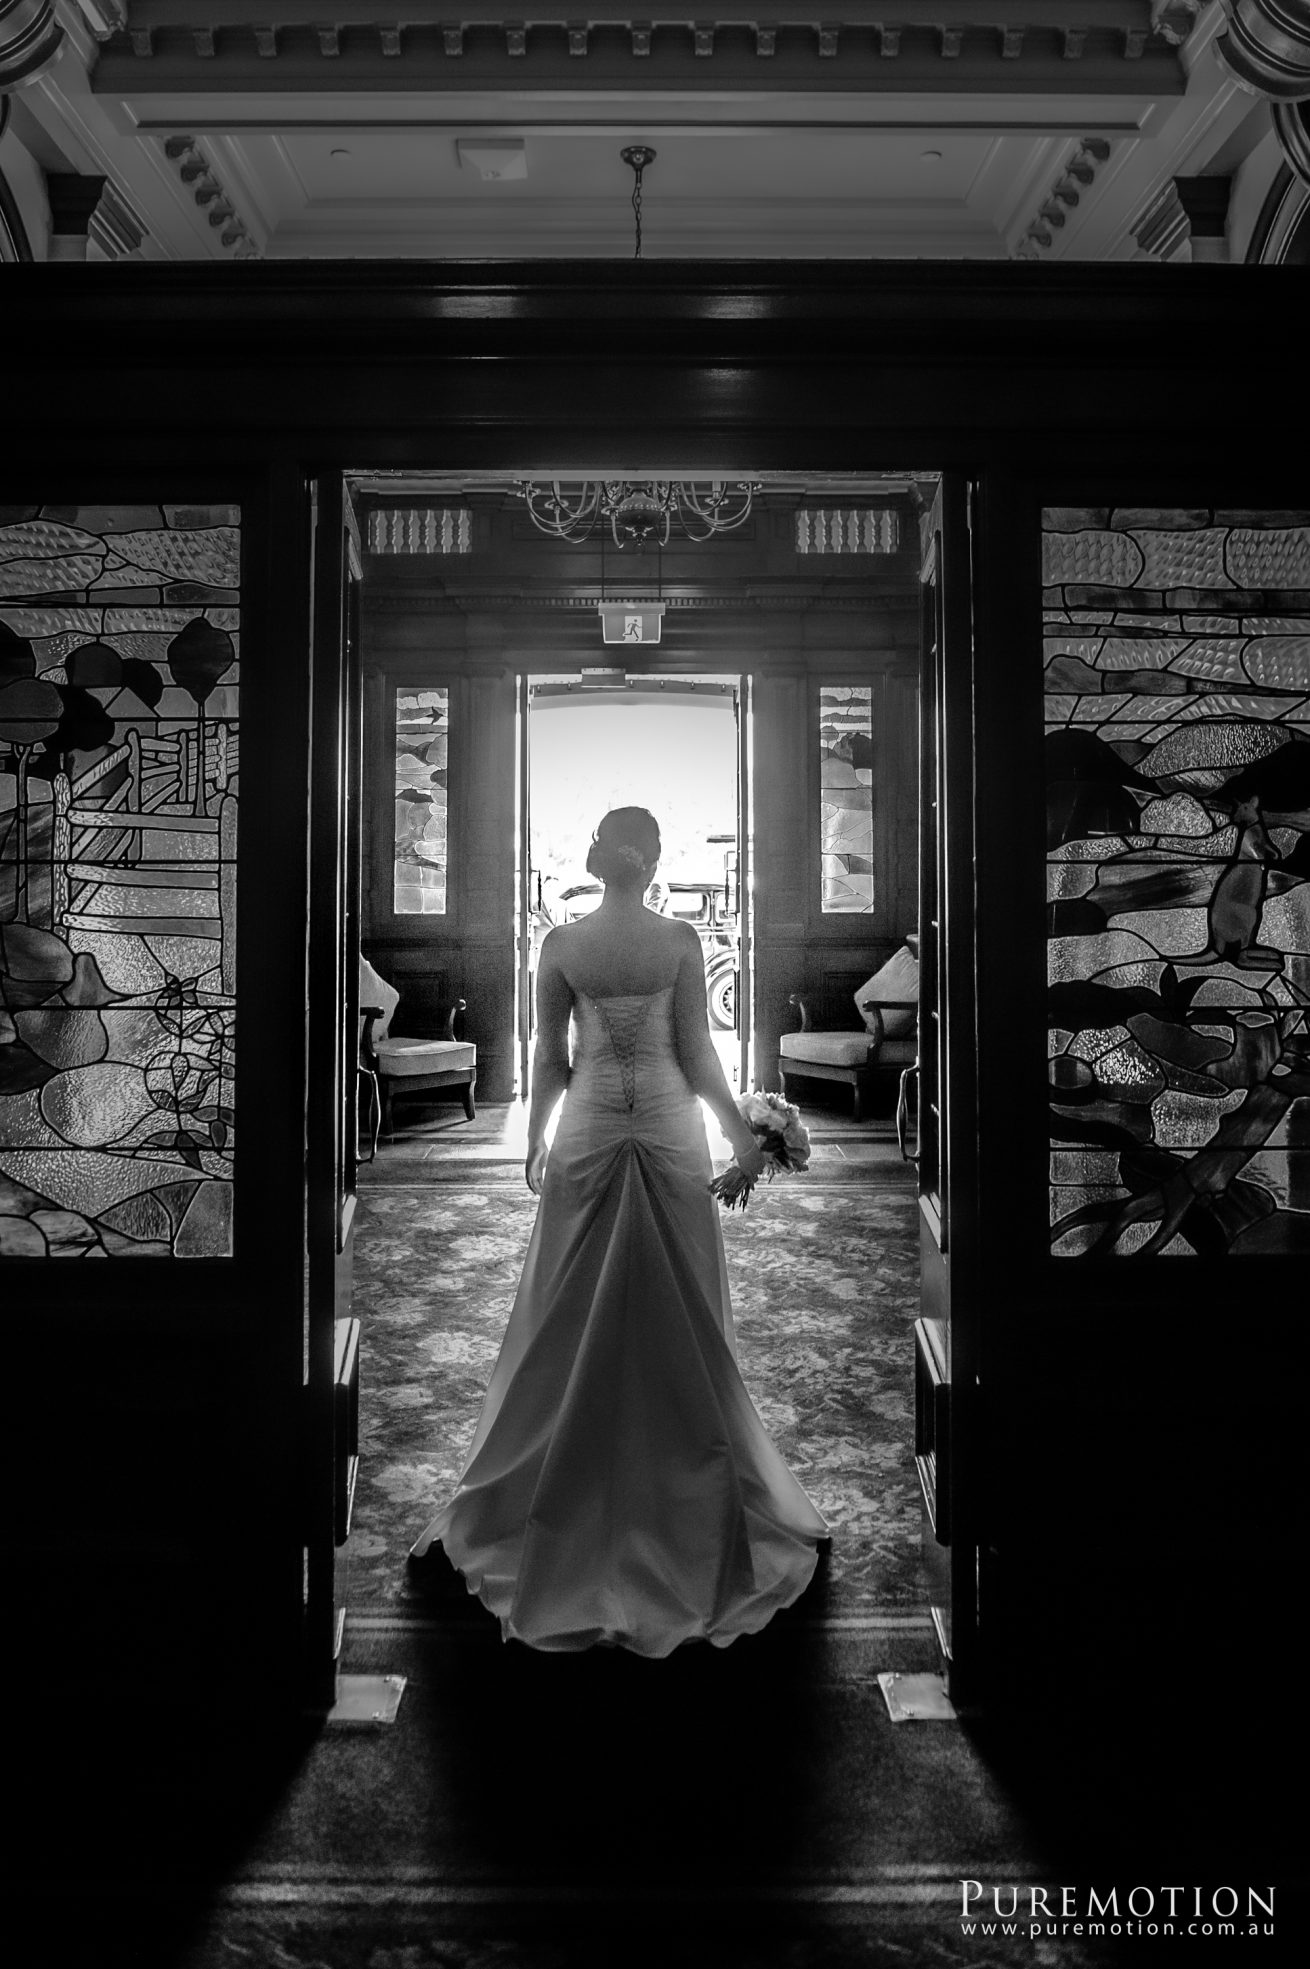 20150926 Puremotion Wedding Photography Alex Huang Brisbane KatieCameron-0041